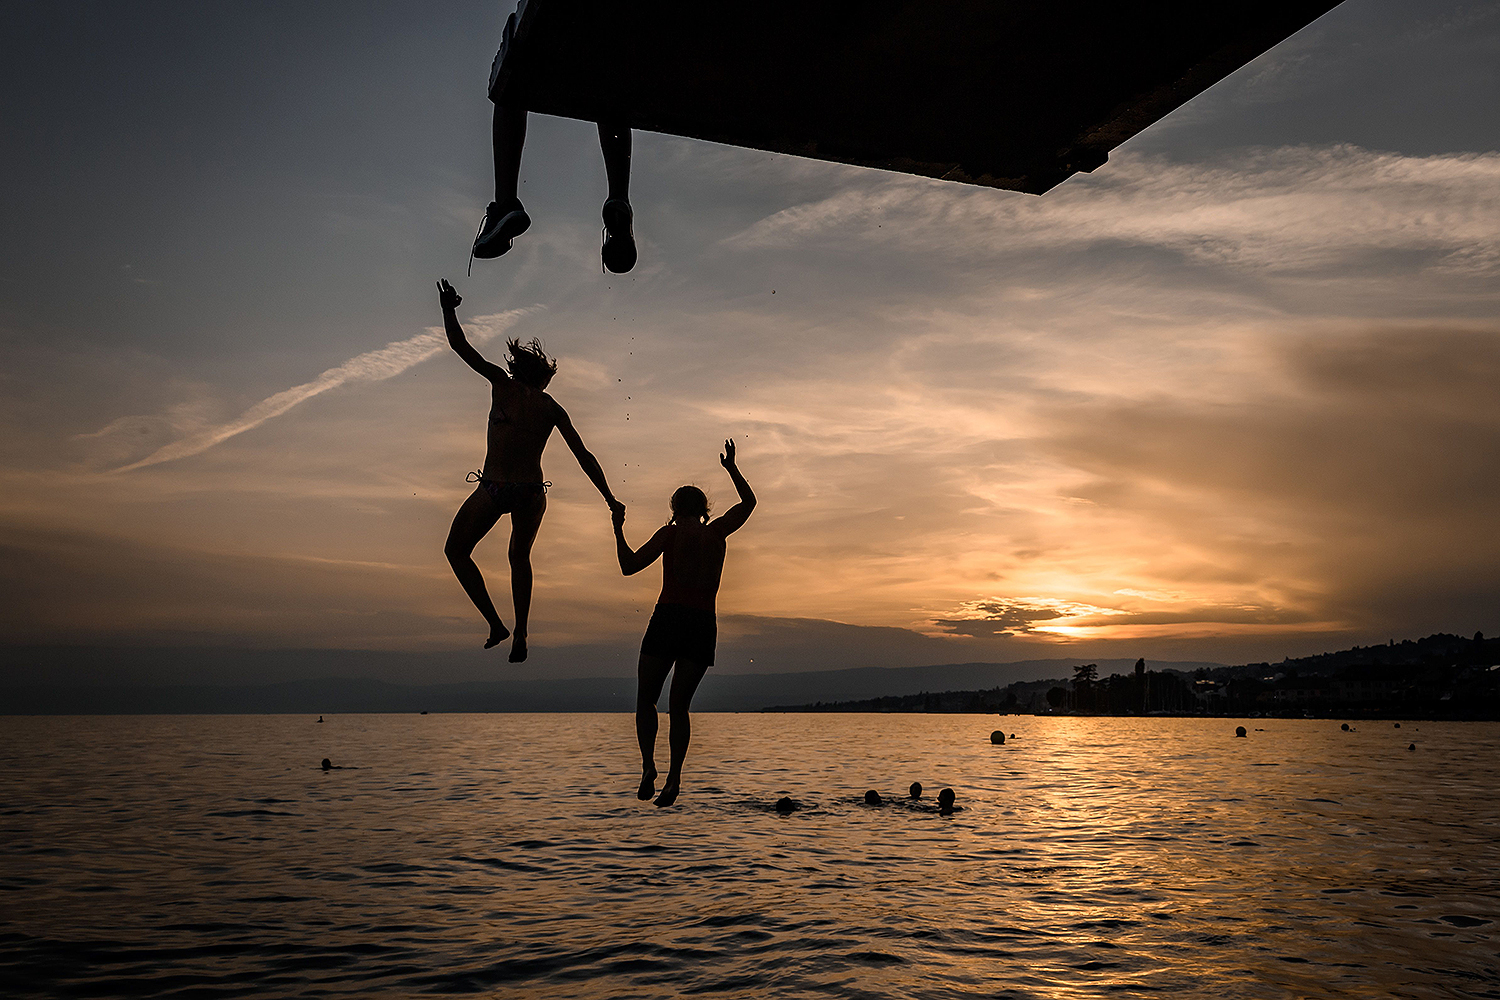 A couple jump from a diving platform in Lake Geneva near the village of Lutry, Switzerland, at sunset Aug. 9 as a heatwave swept across Europe. FABRICE COFFRINI/AFP via Getty Images